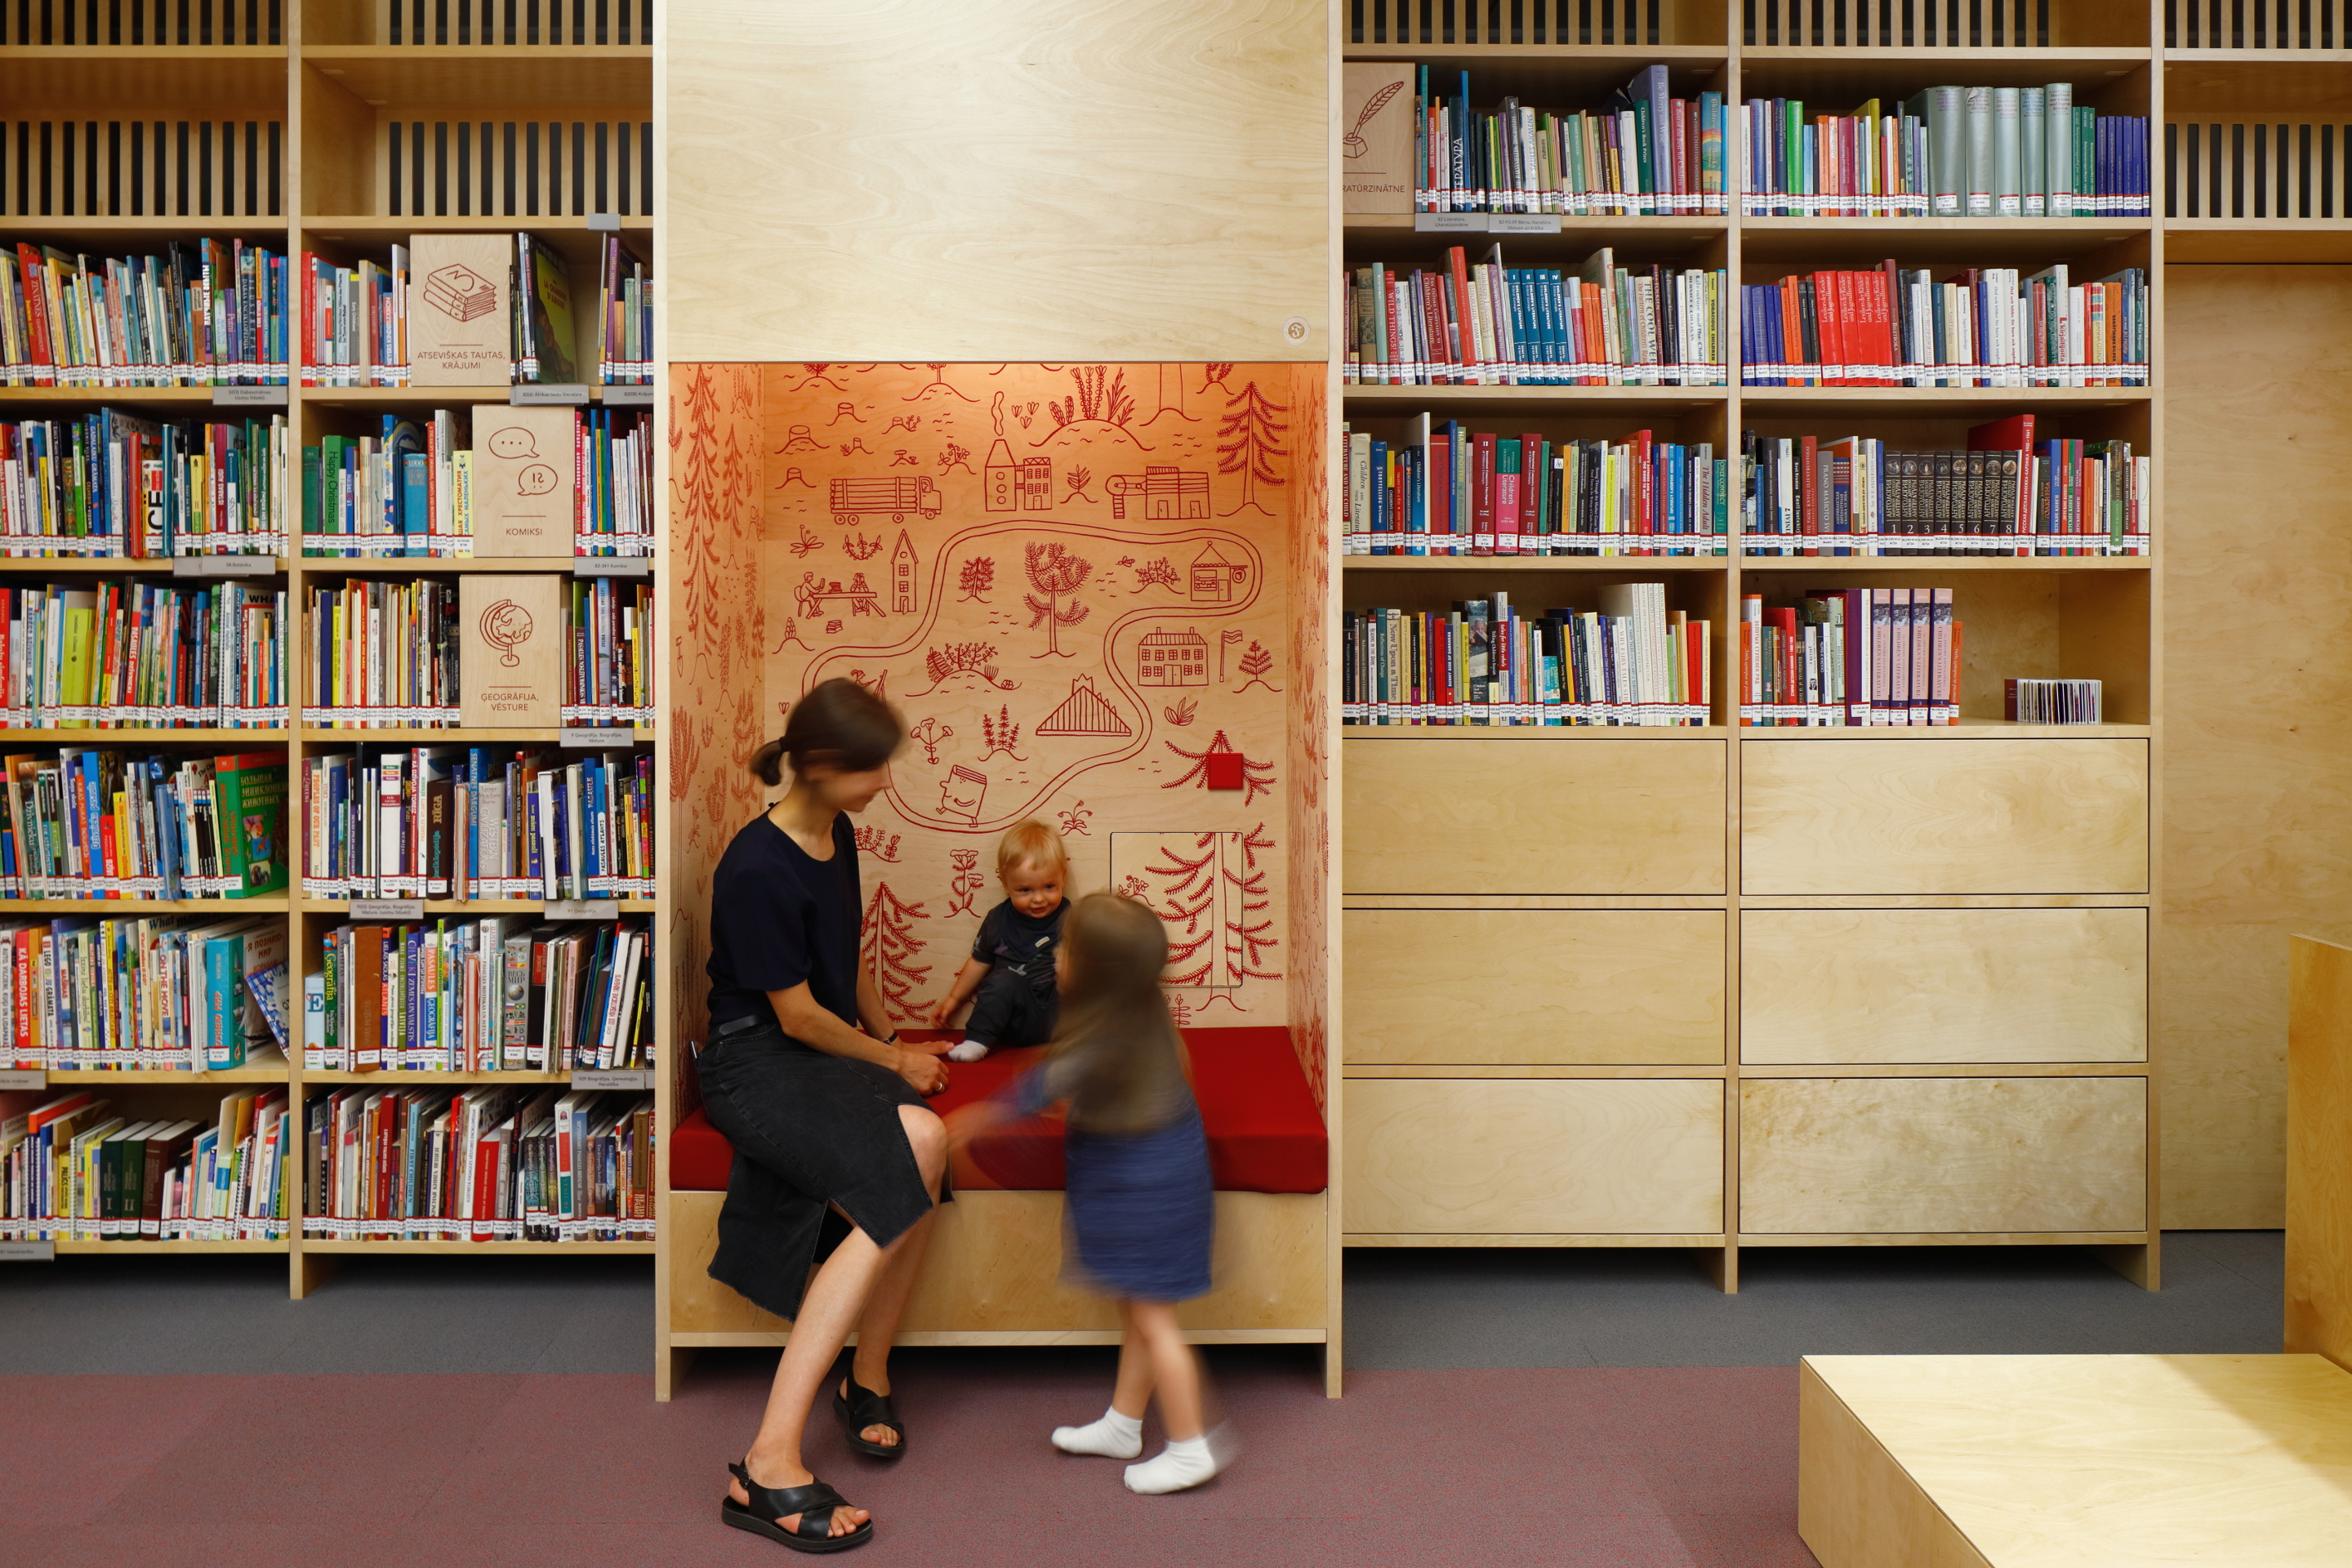 gaiss-041-nll-childrens-library-12-photo-ansis-starks